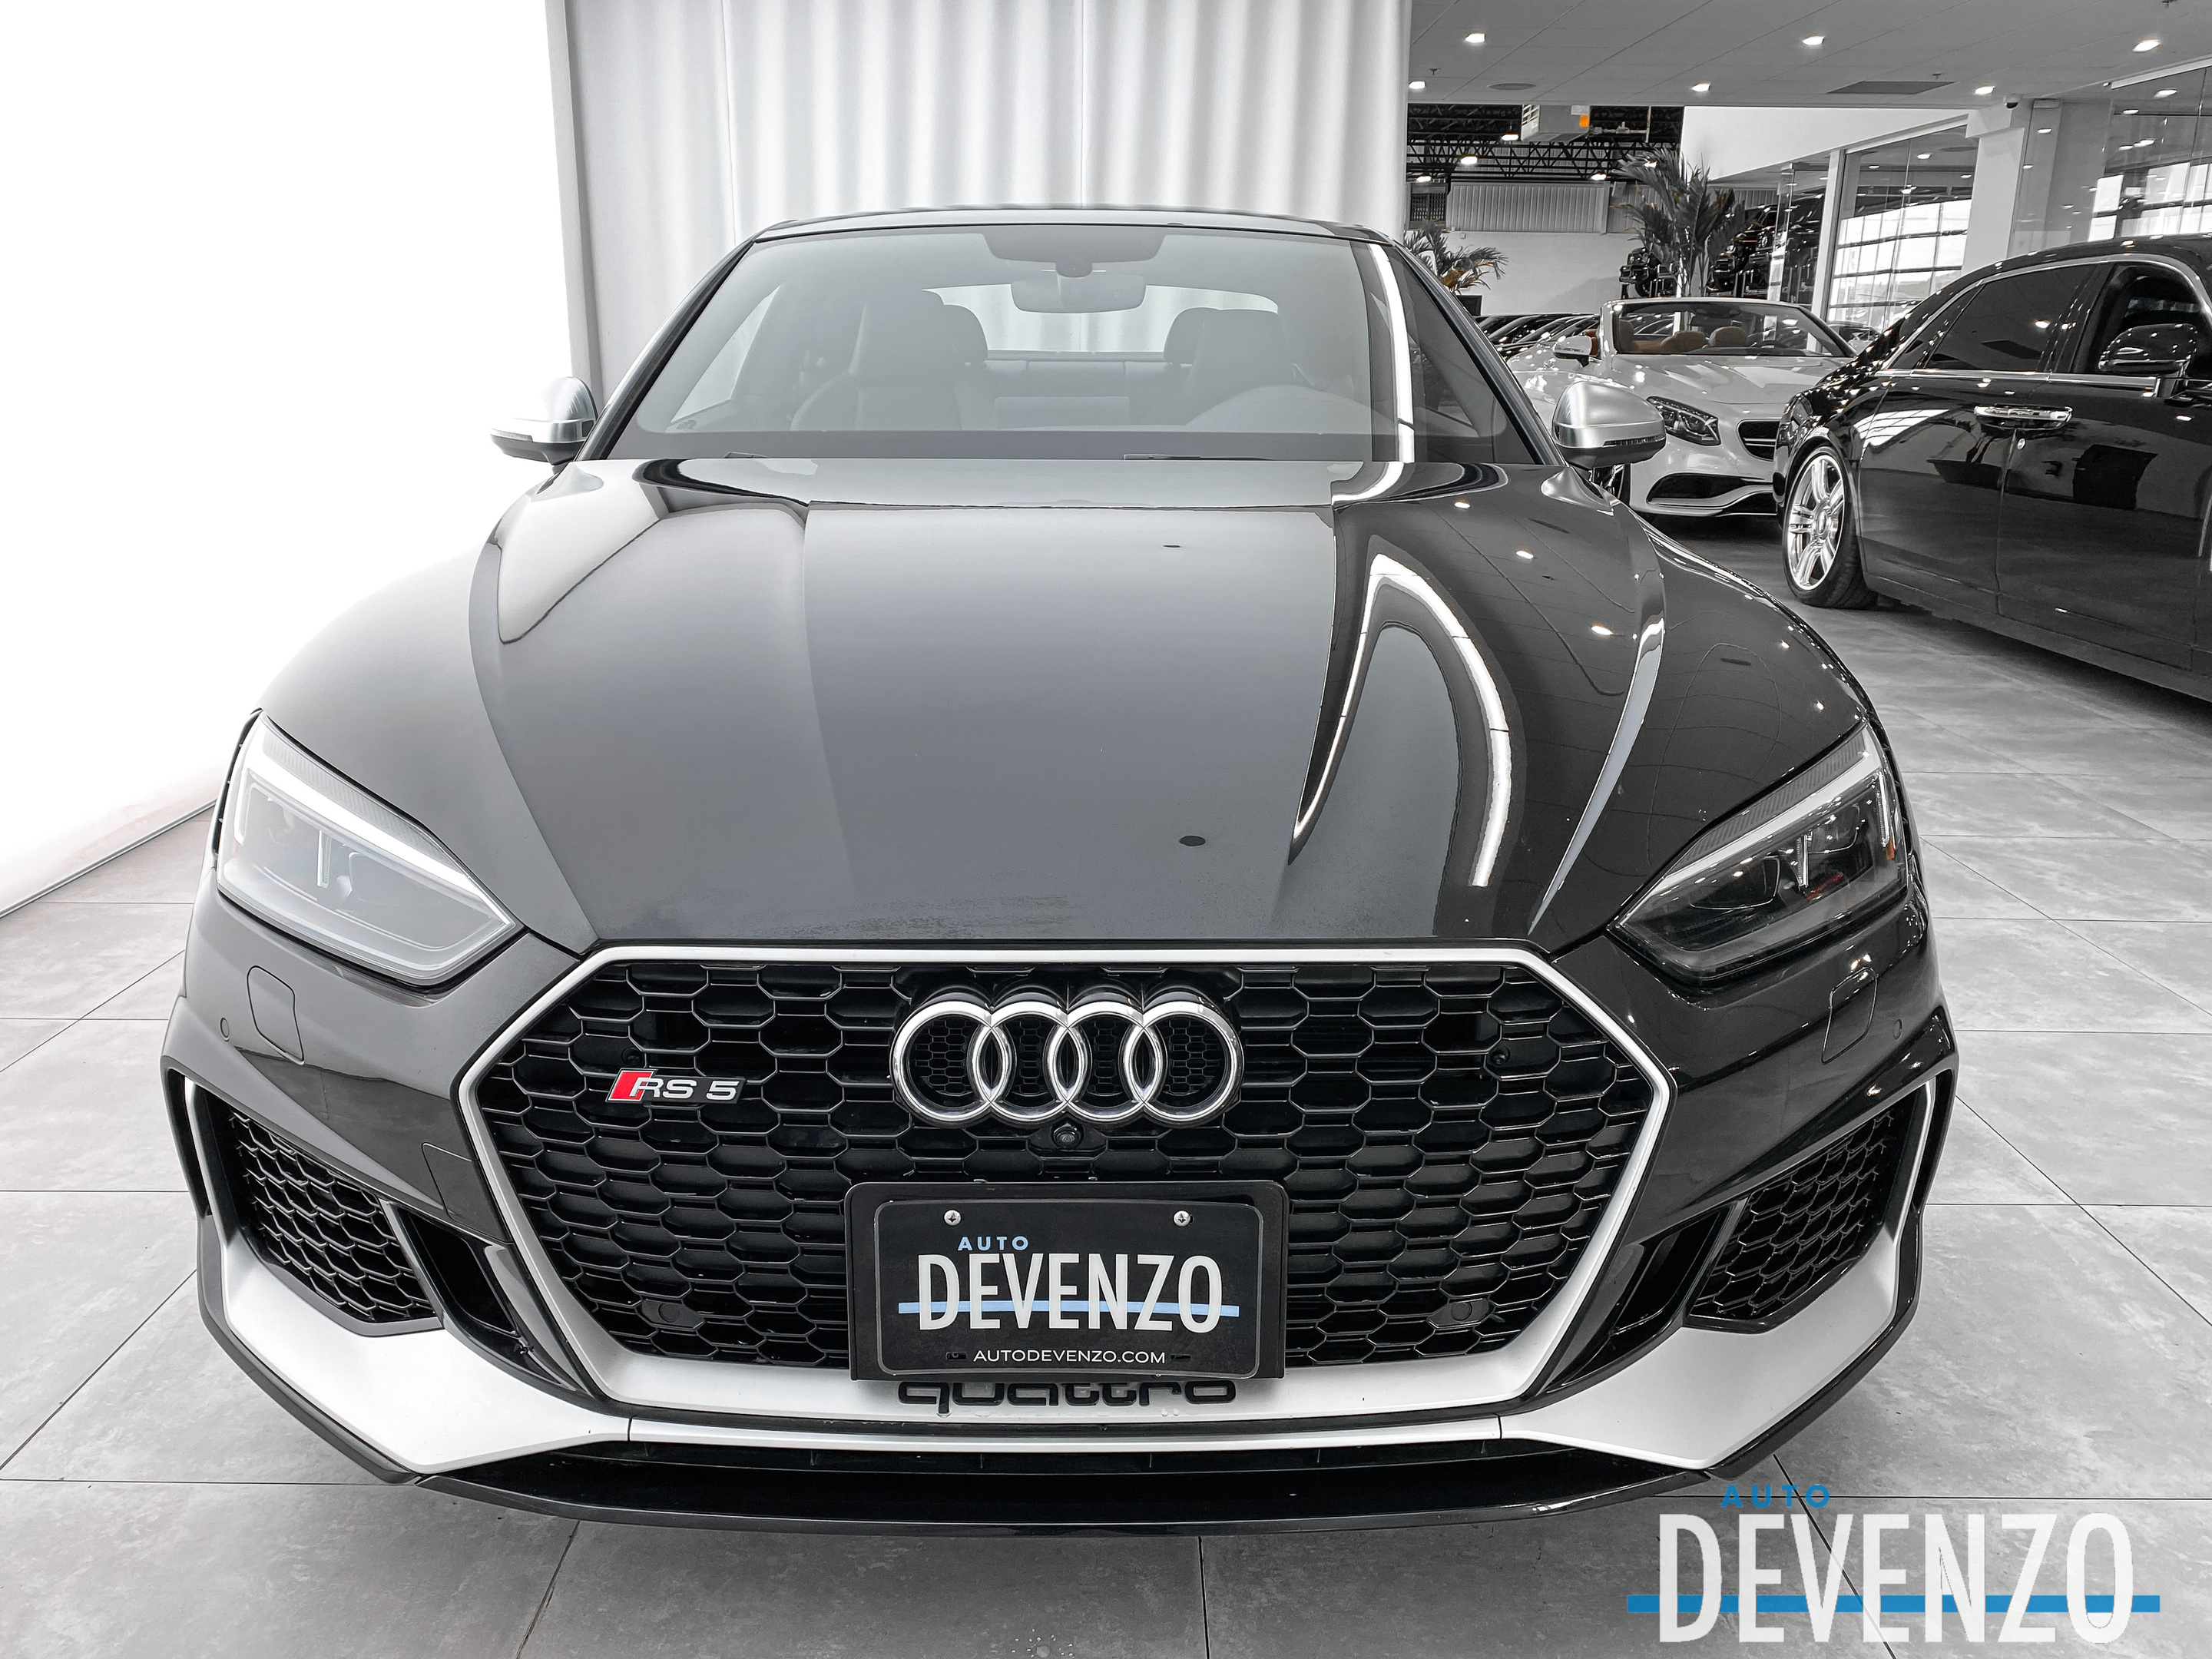 2018 Audi RS 5 Coupe RS5 2.9 QUATTRO 444HP PREMIUM / BANG & OLUFSEN complet